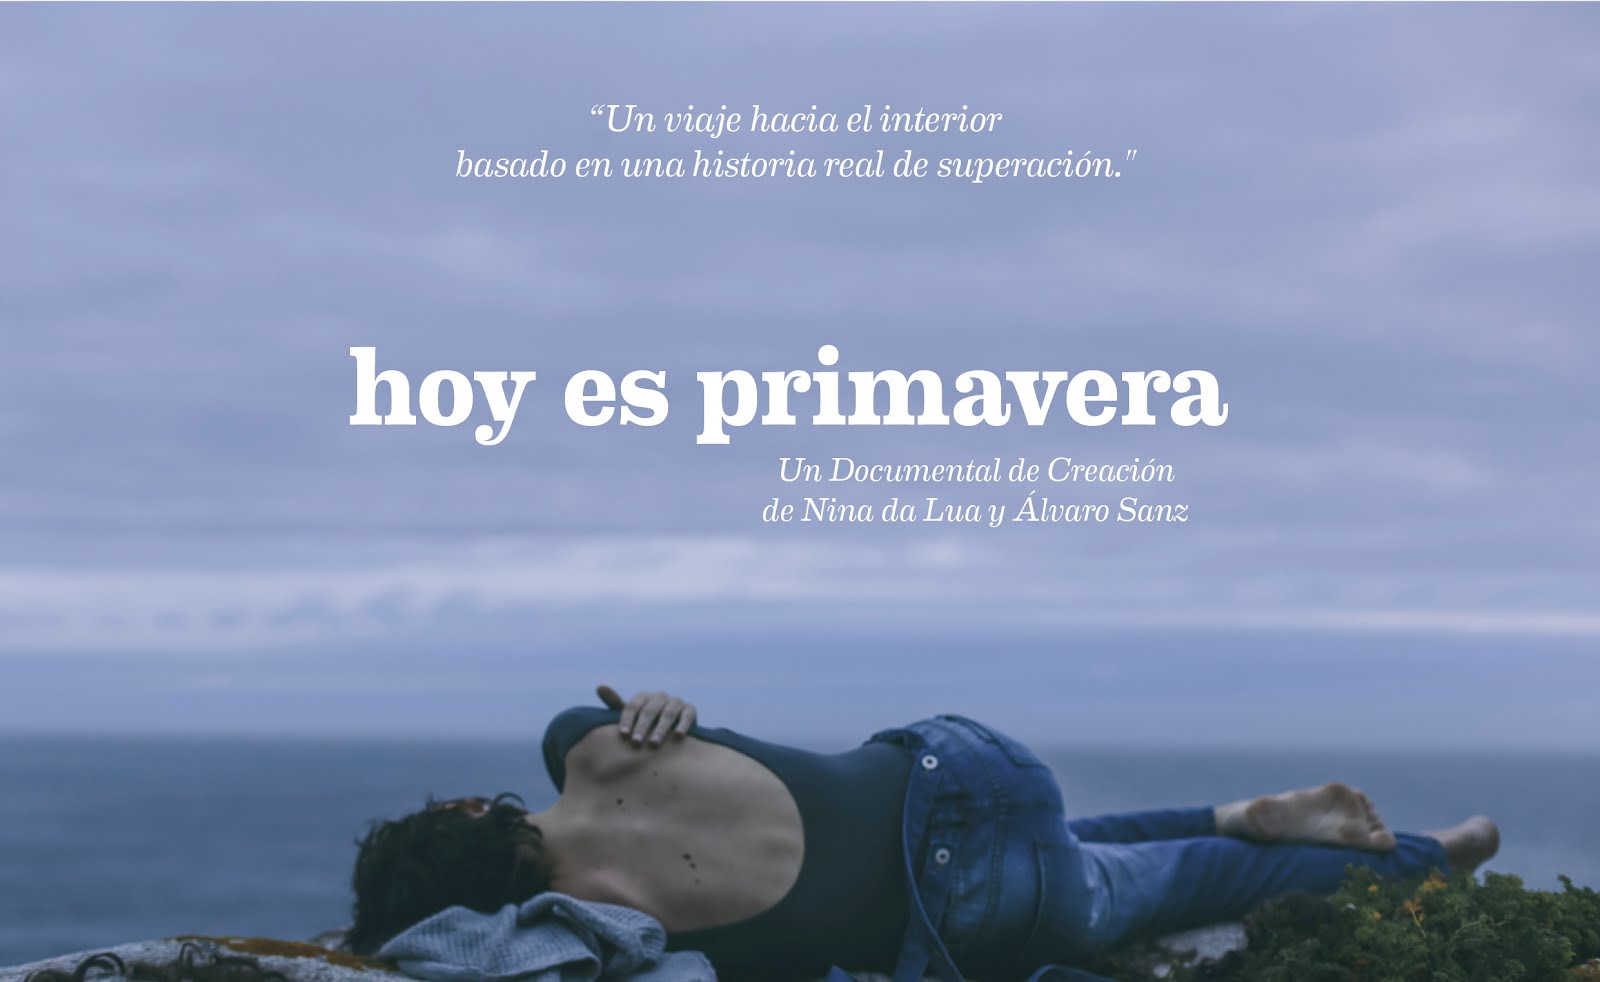 Ver documental 'Hoy es primavera':